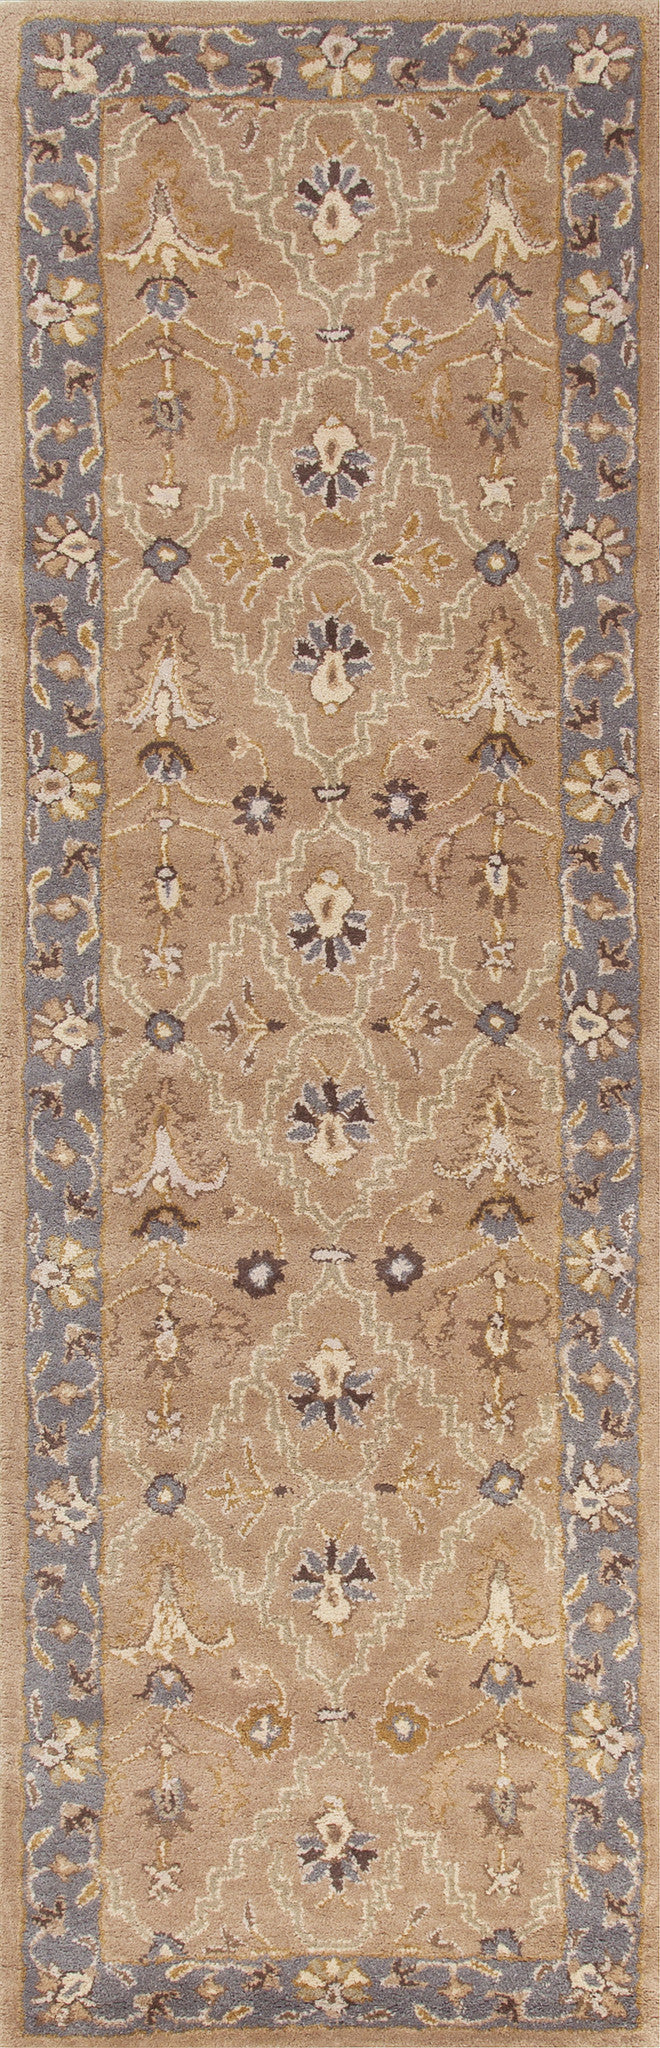 Jaipur Rugs Classic Oriental Pattern Taupe/Blue Wool Area Rug